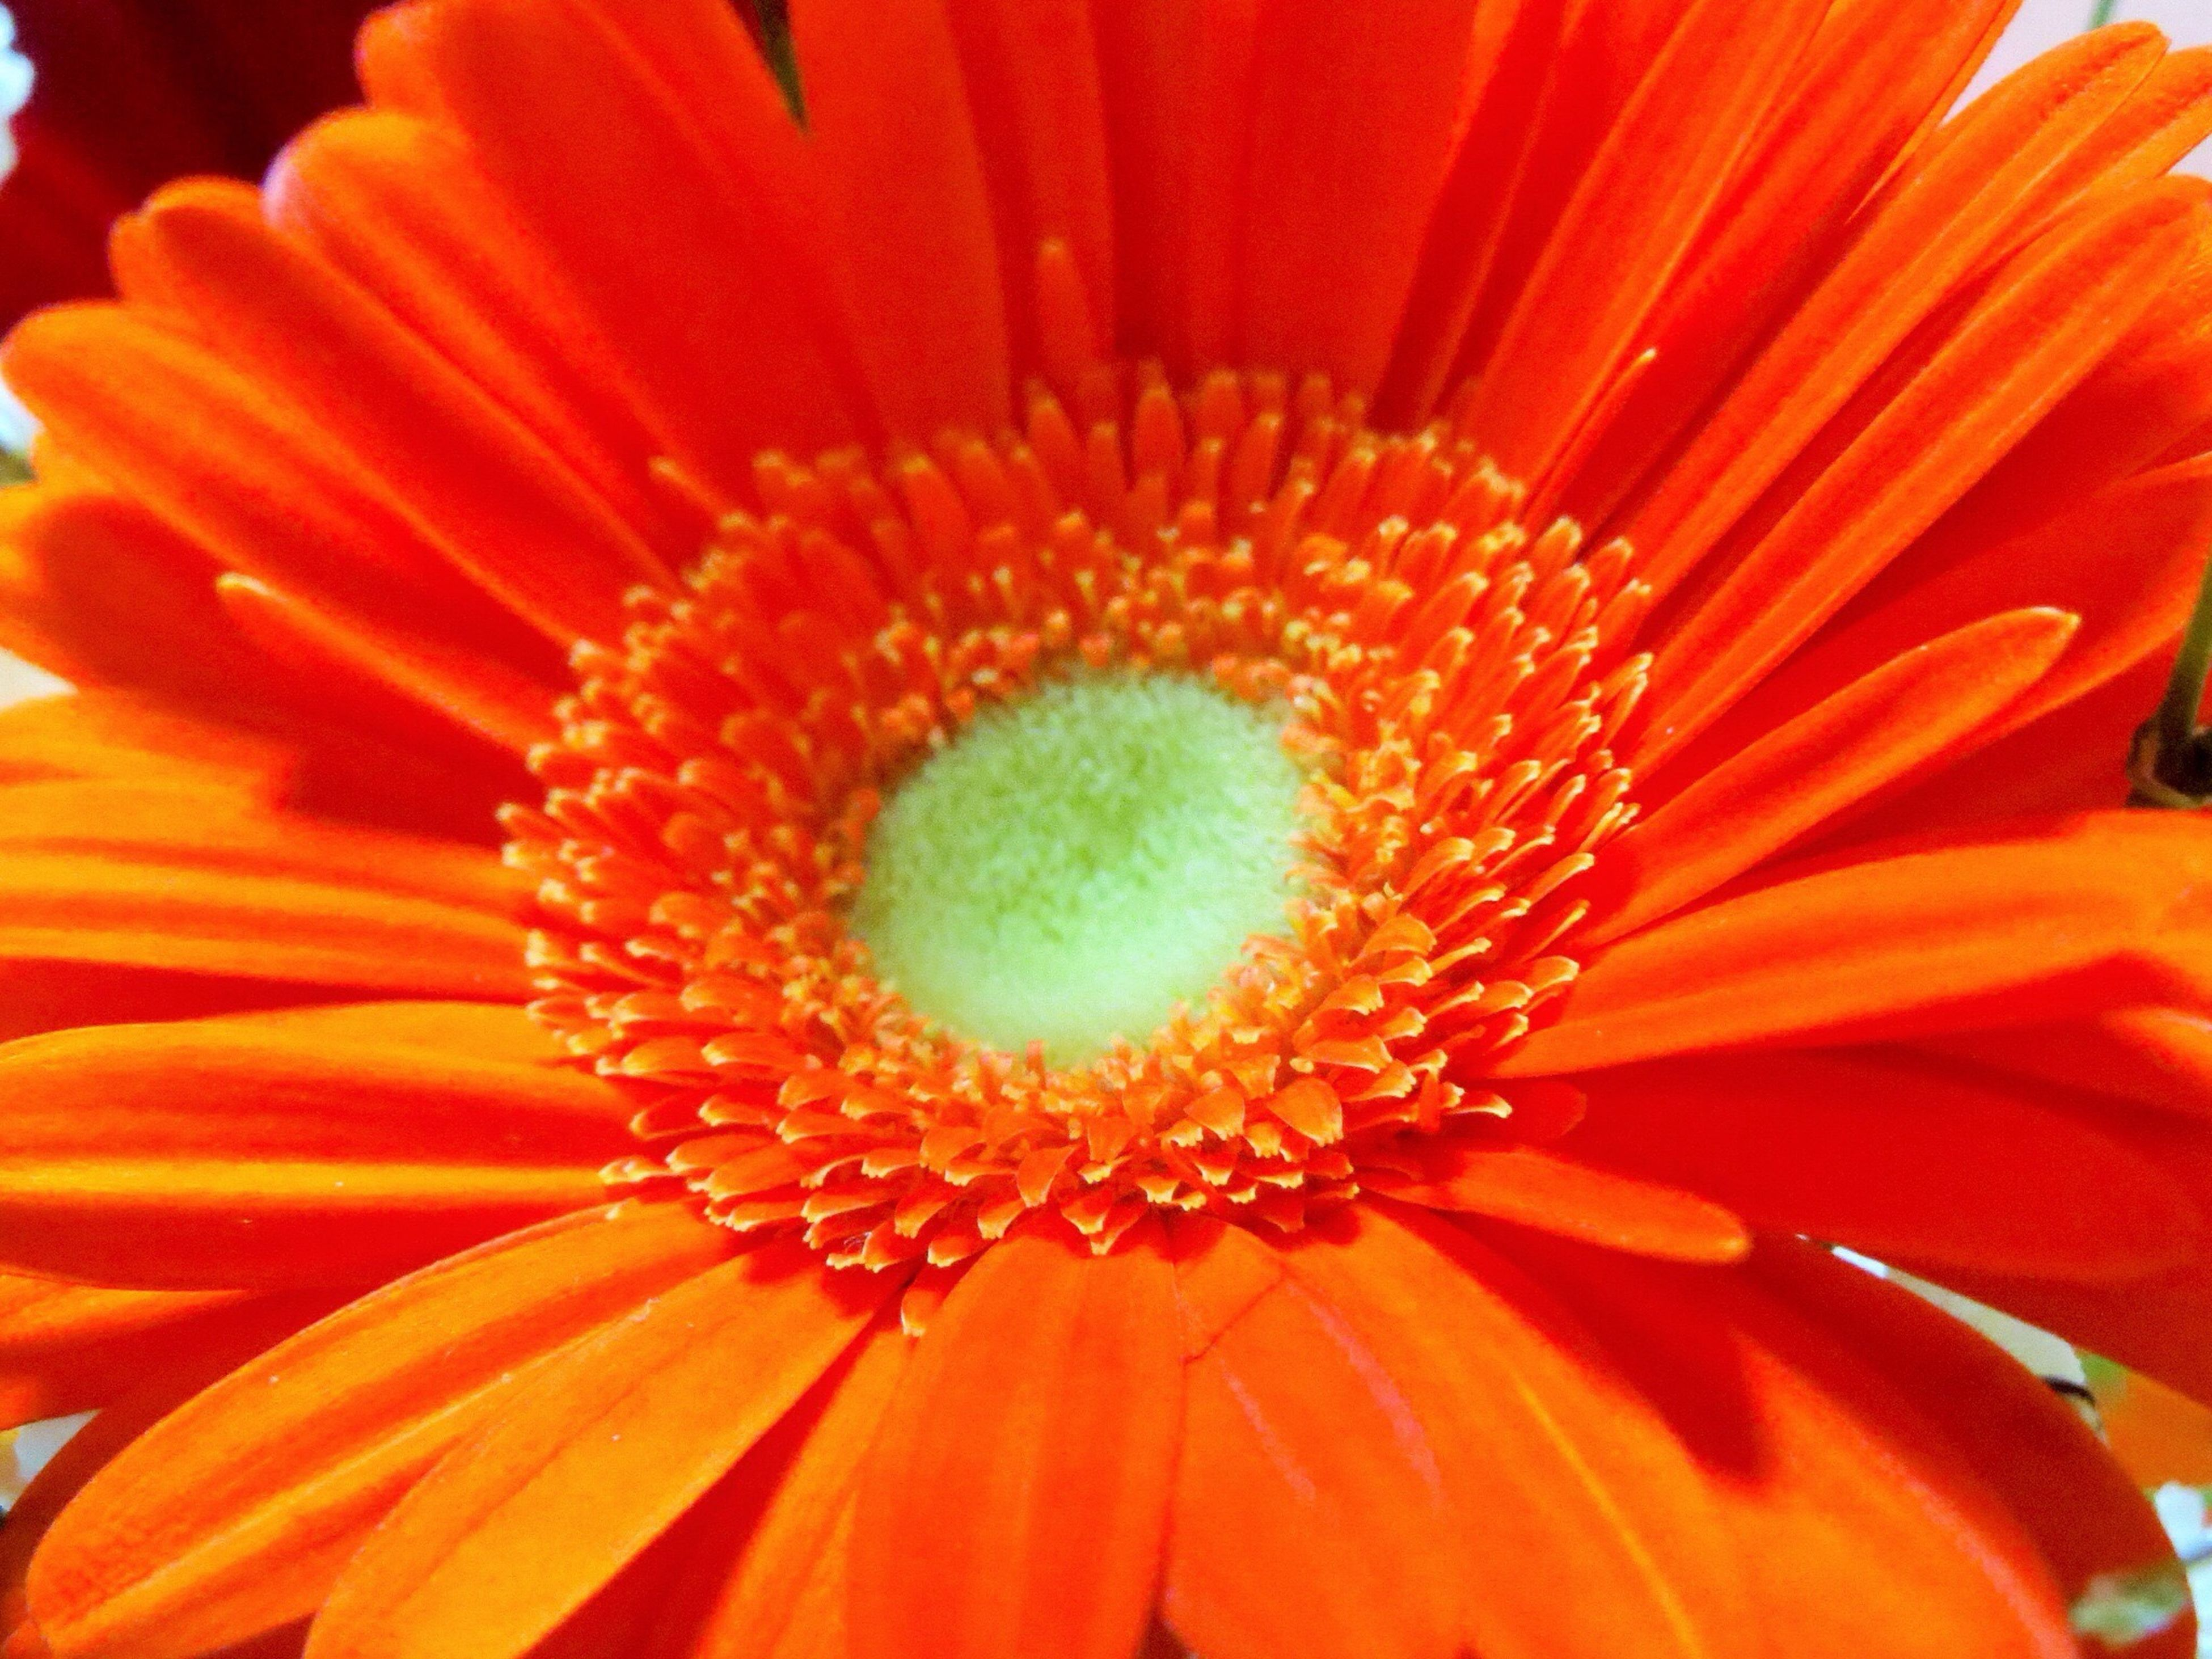 flower, petal, flower head, freshness, fragility, beauty in nature, pollen, single flower, close-up, orange color, growth, nature, blooming, full frame, red, stamen, backgrounds, gerbera daisy, in bloom, no people